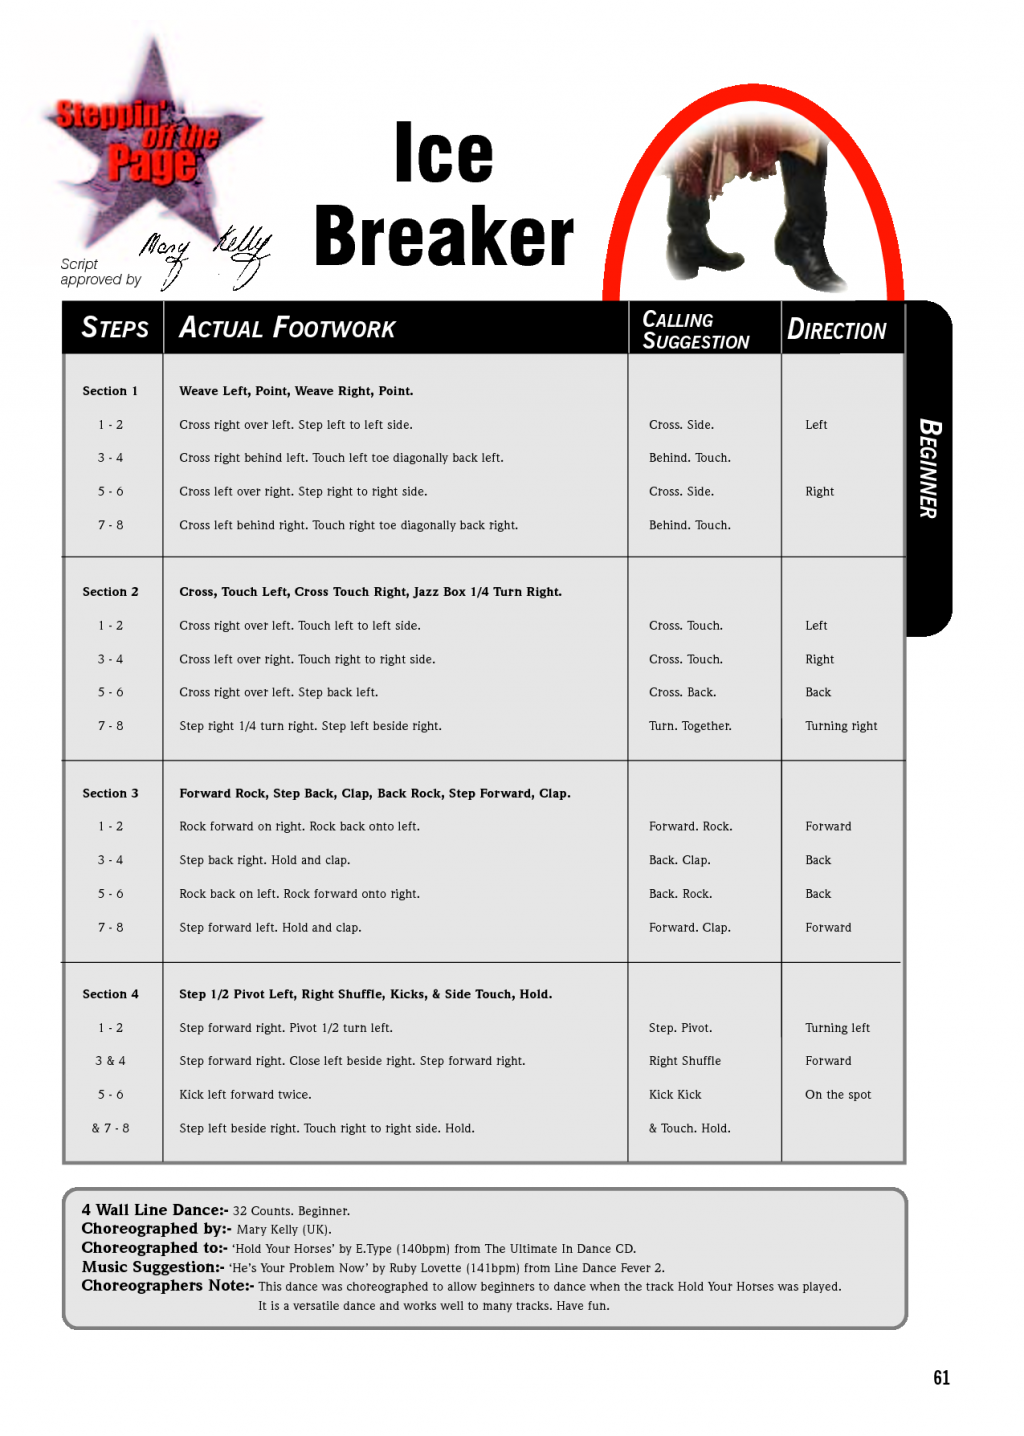 Free Worksheet Ice Breaker Worksheets spincushion Worksheets – Icebreaker Worksheets